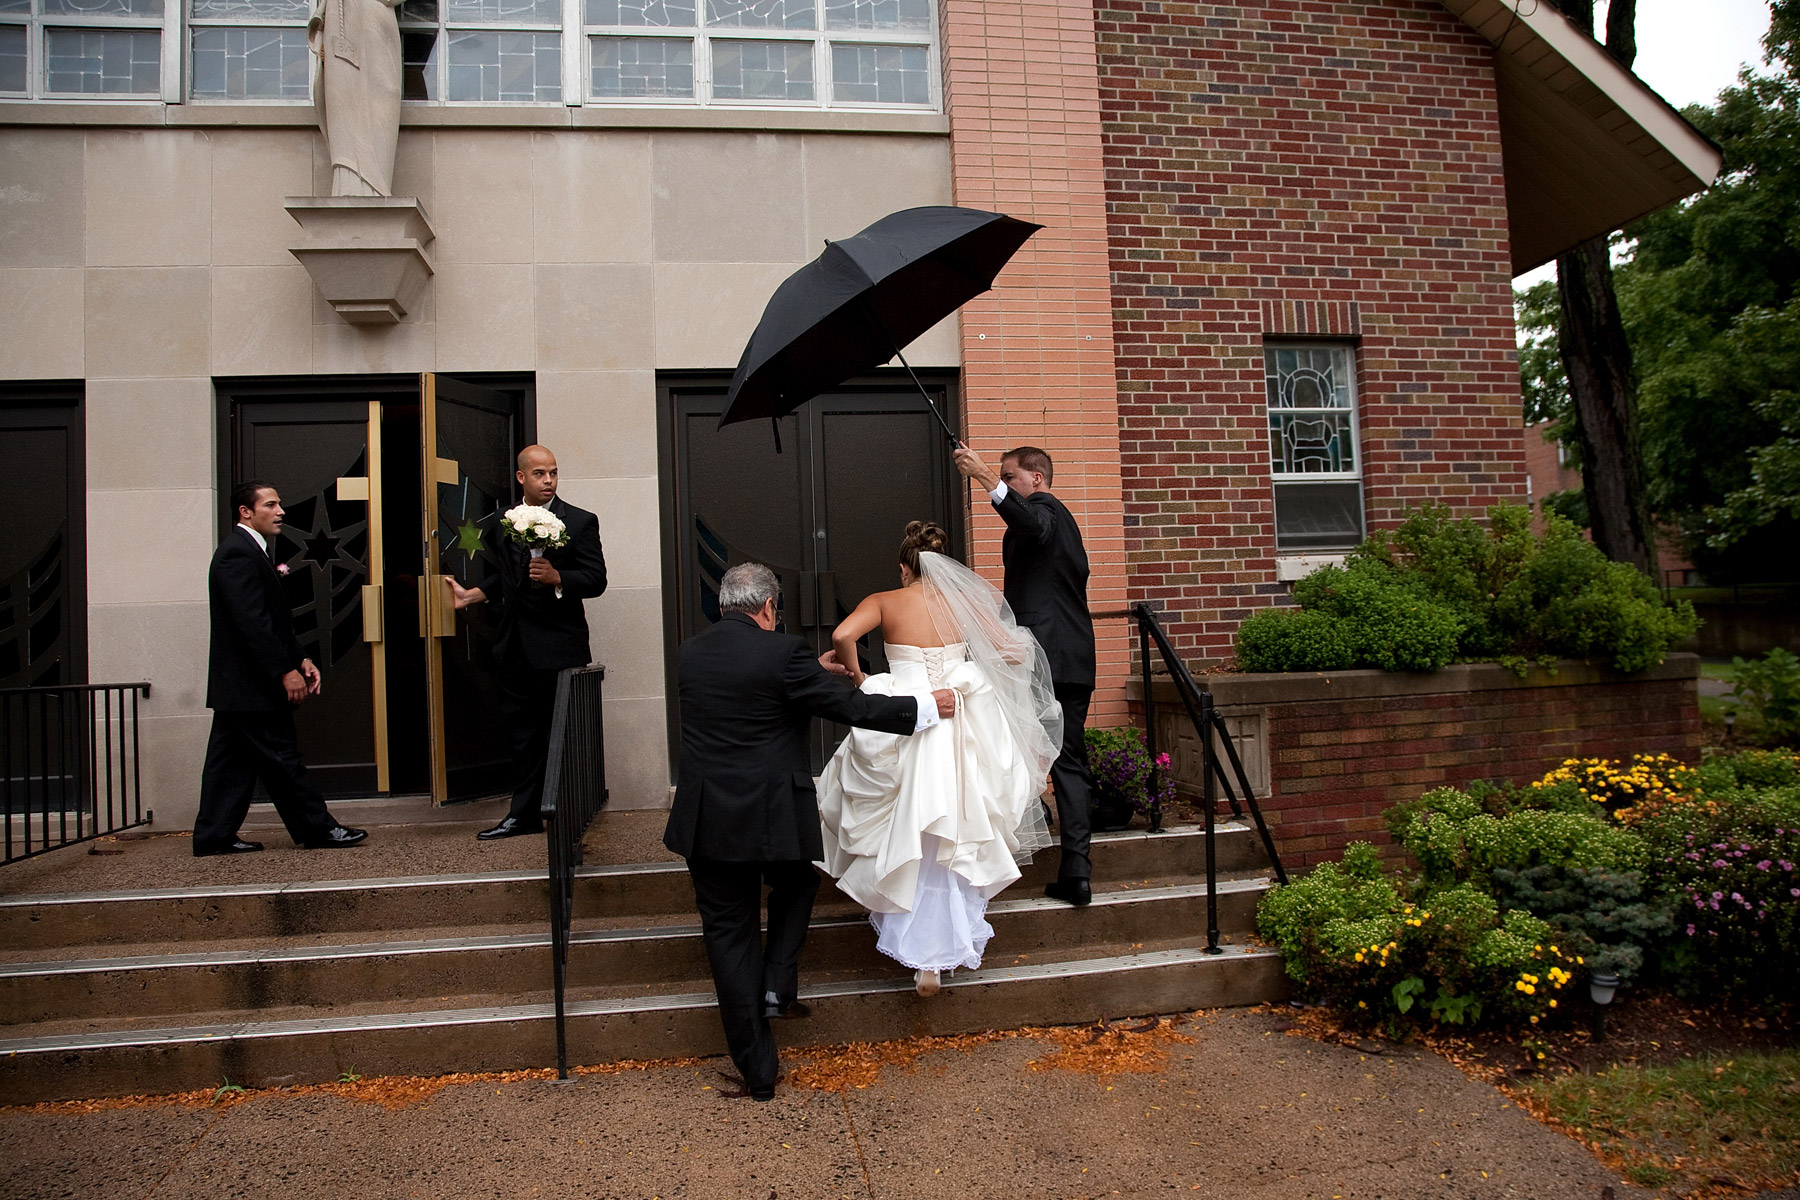 Bride going into the church